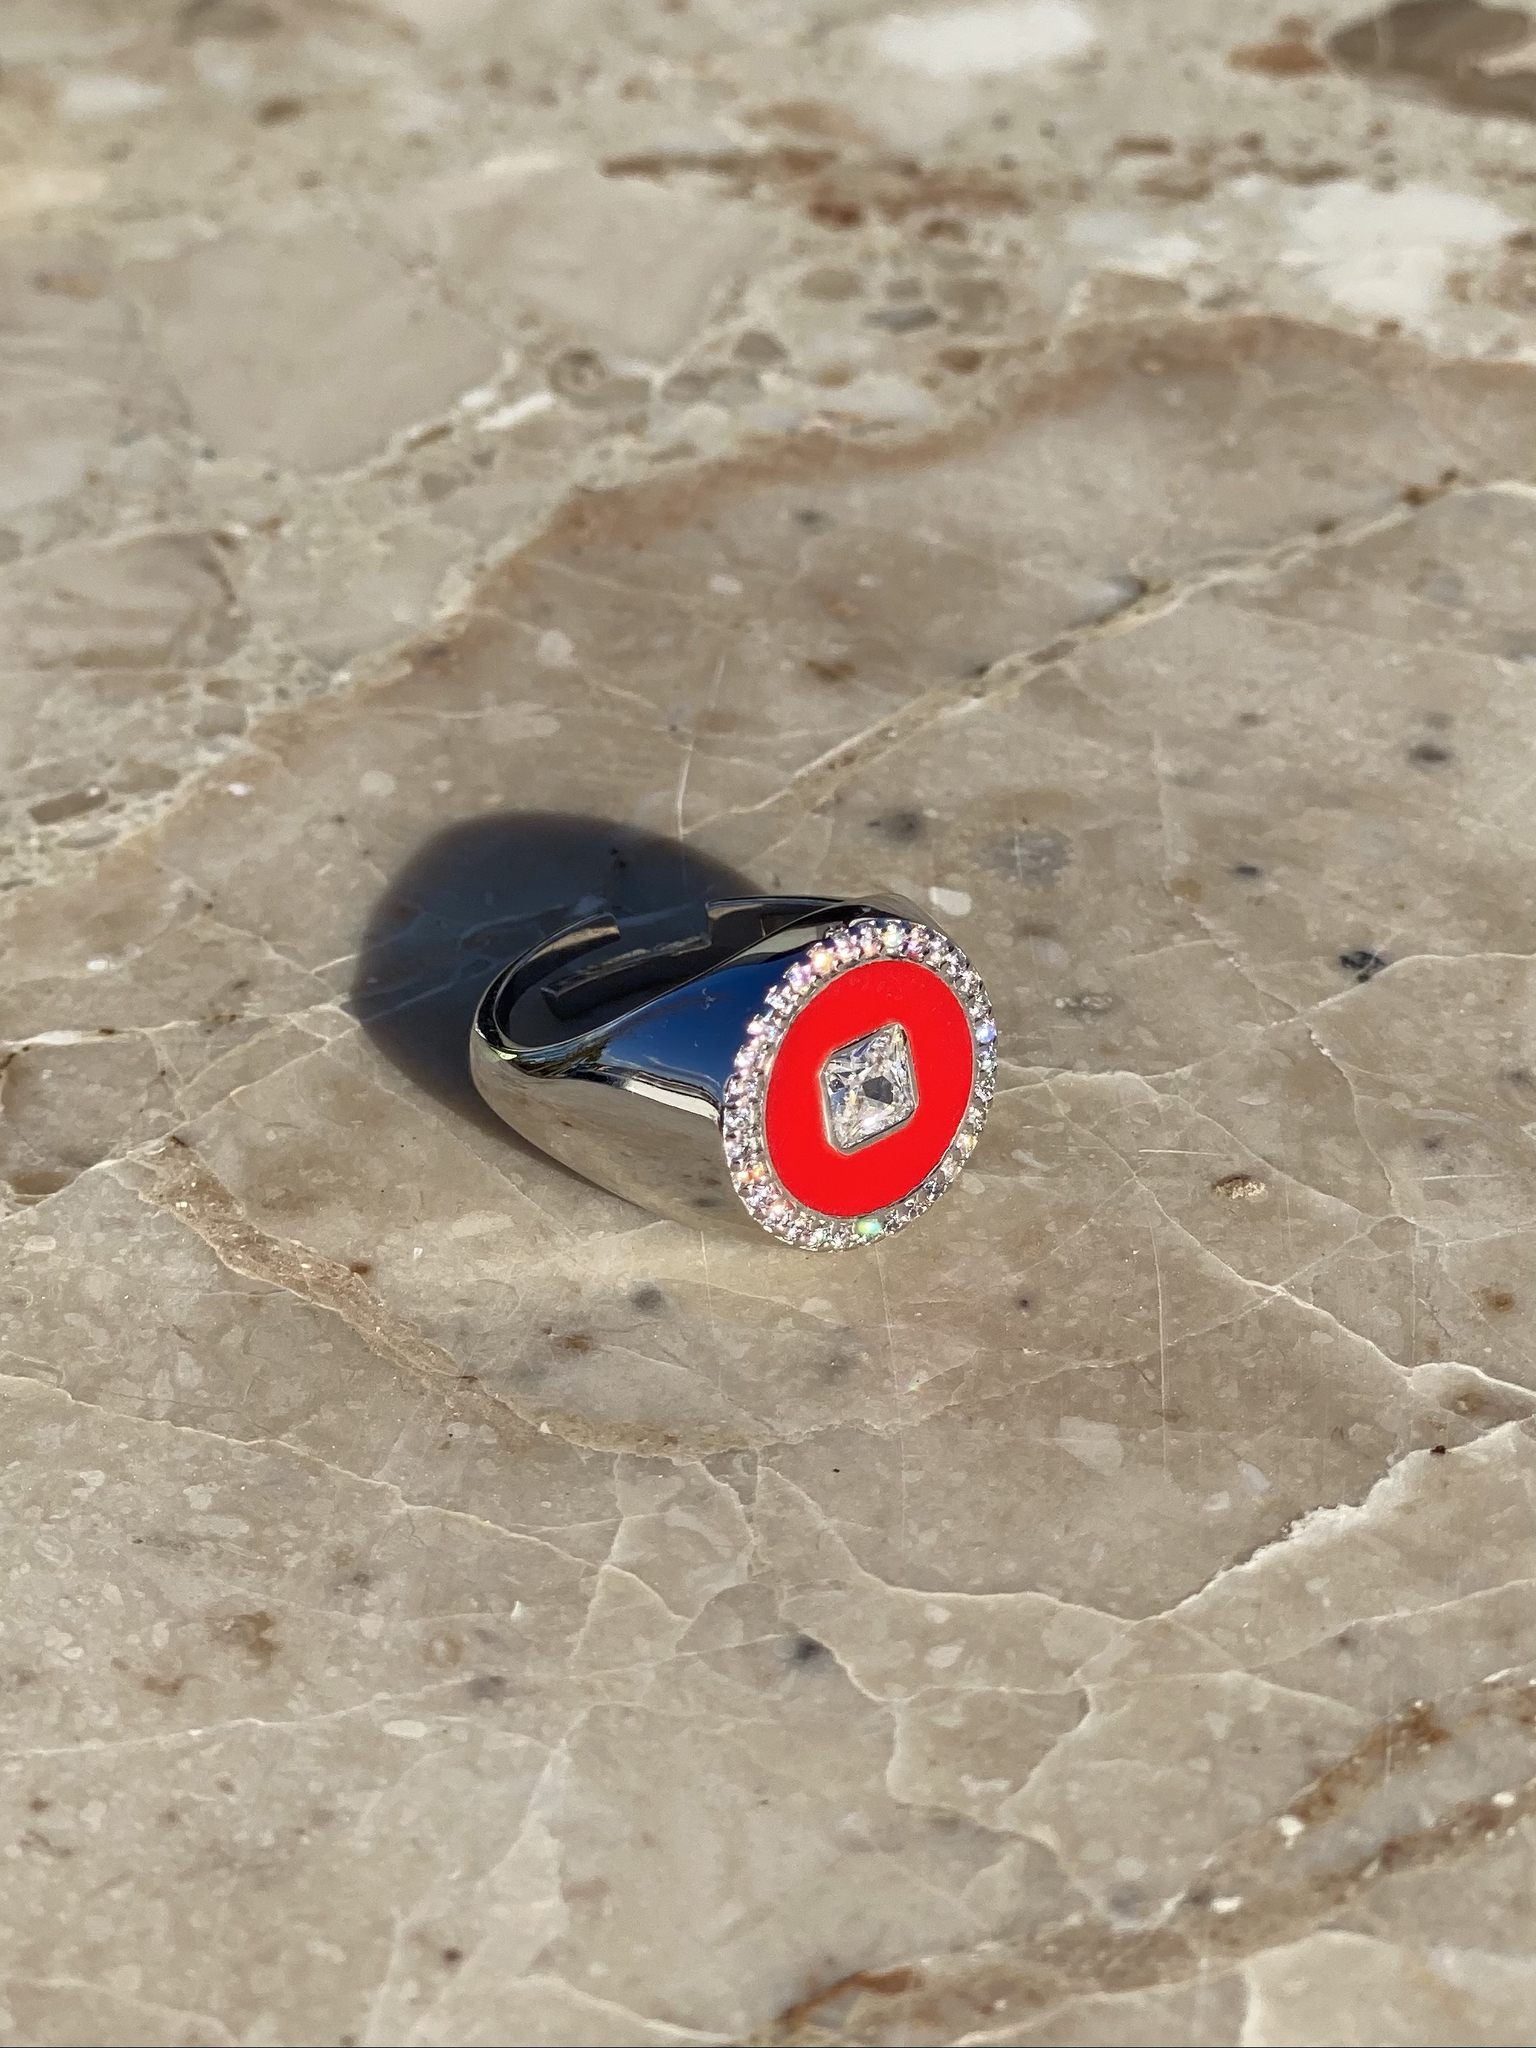 Round signet ring in silver and red enamel